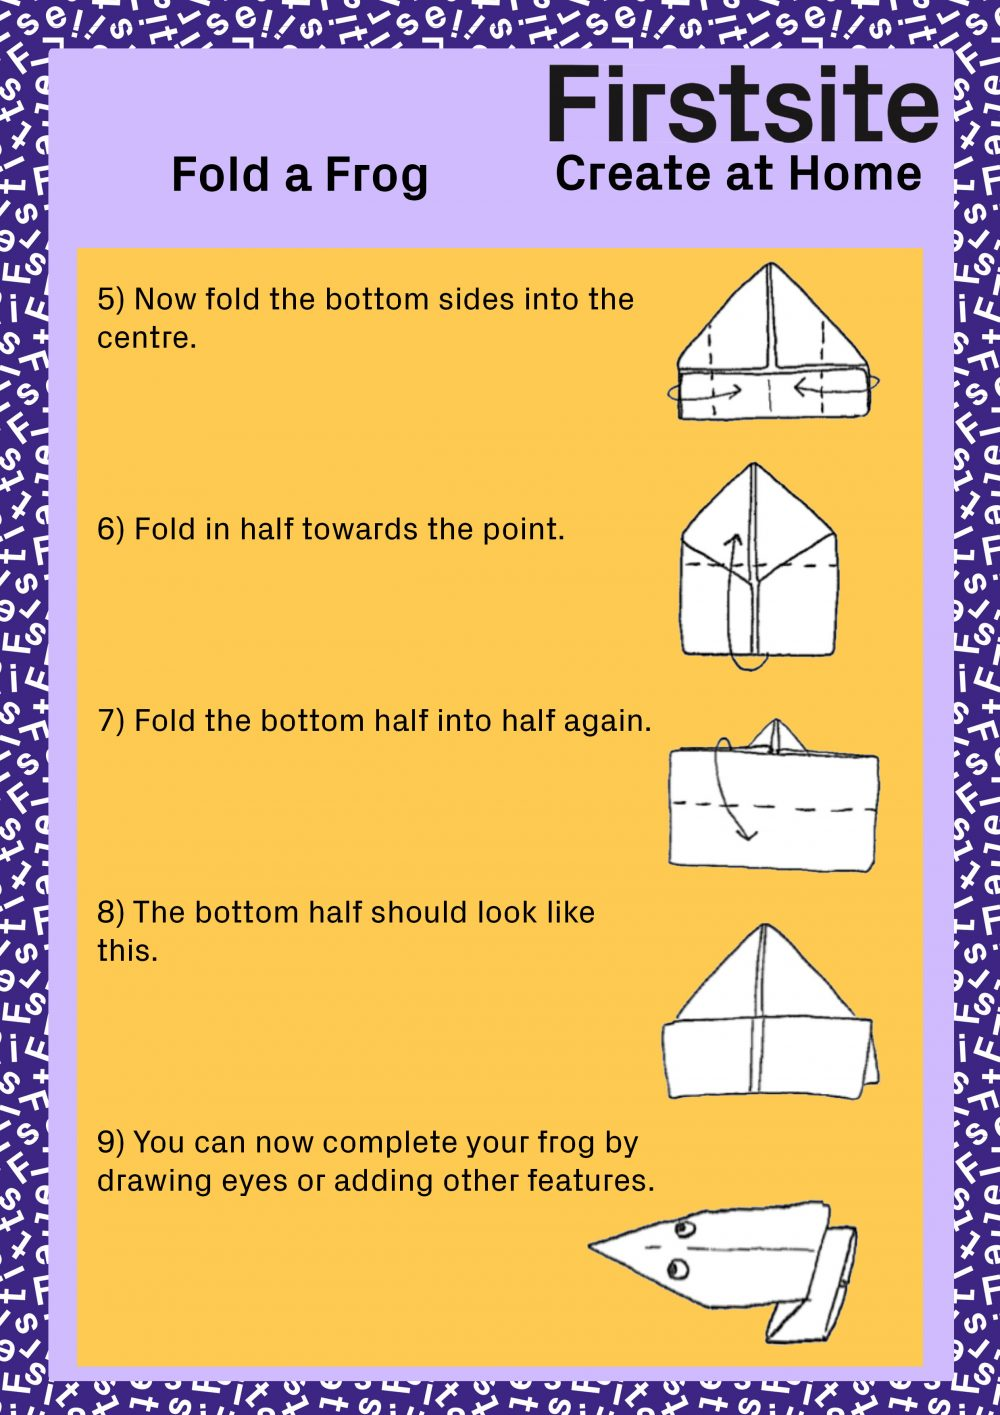 Firstsite Create at Home Fold a Friend Instructions pg 3 of 5